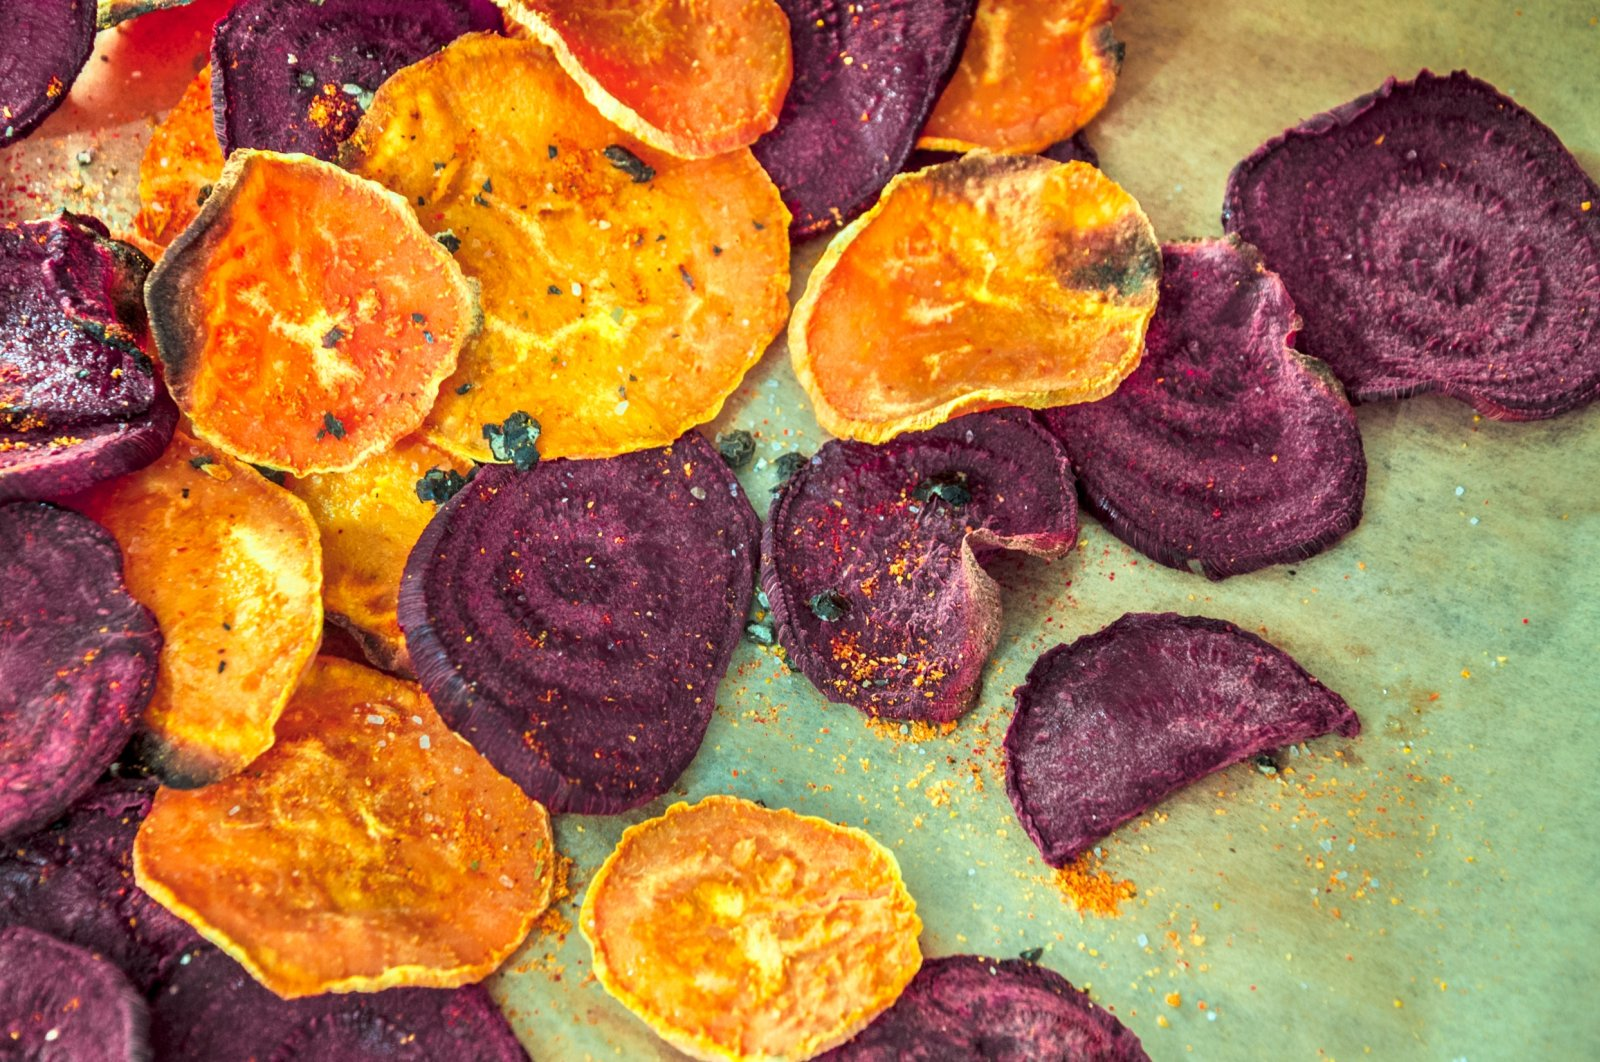 Though oven-baked vegetable chips may use less oil, the level of salt in packaged snacks is alarming. (iStock Photo)